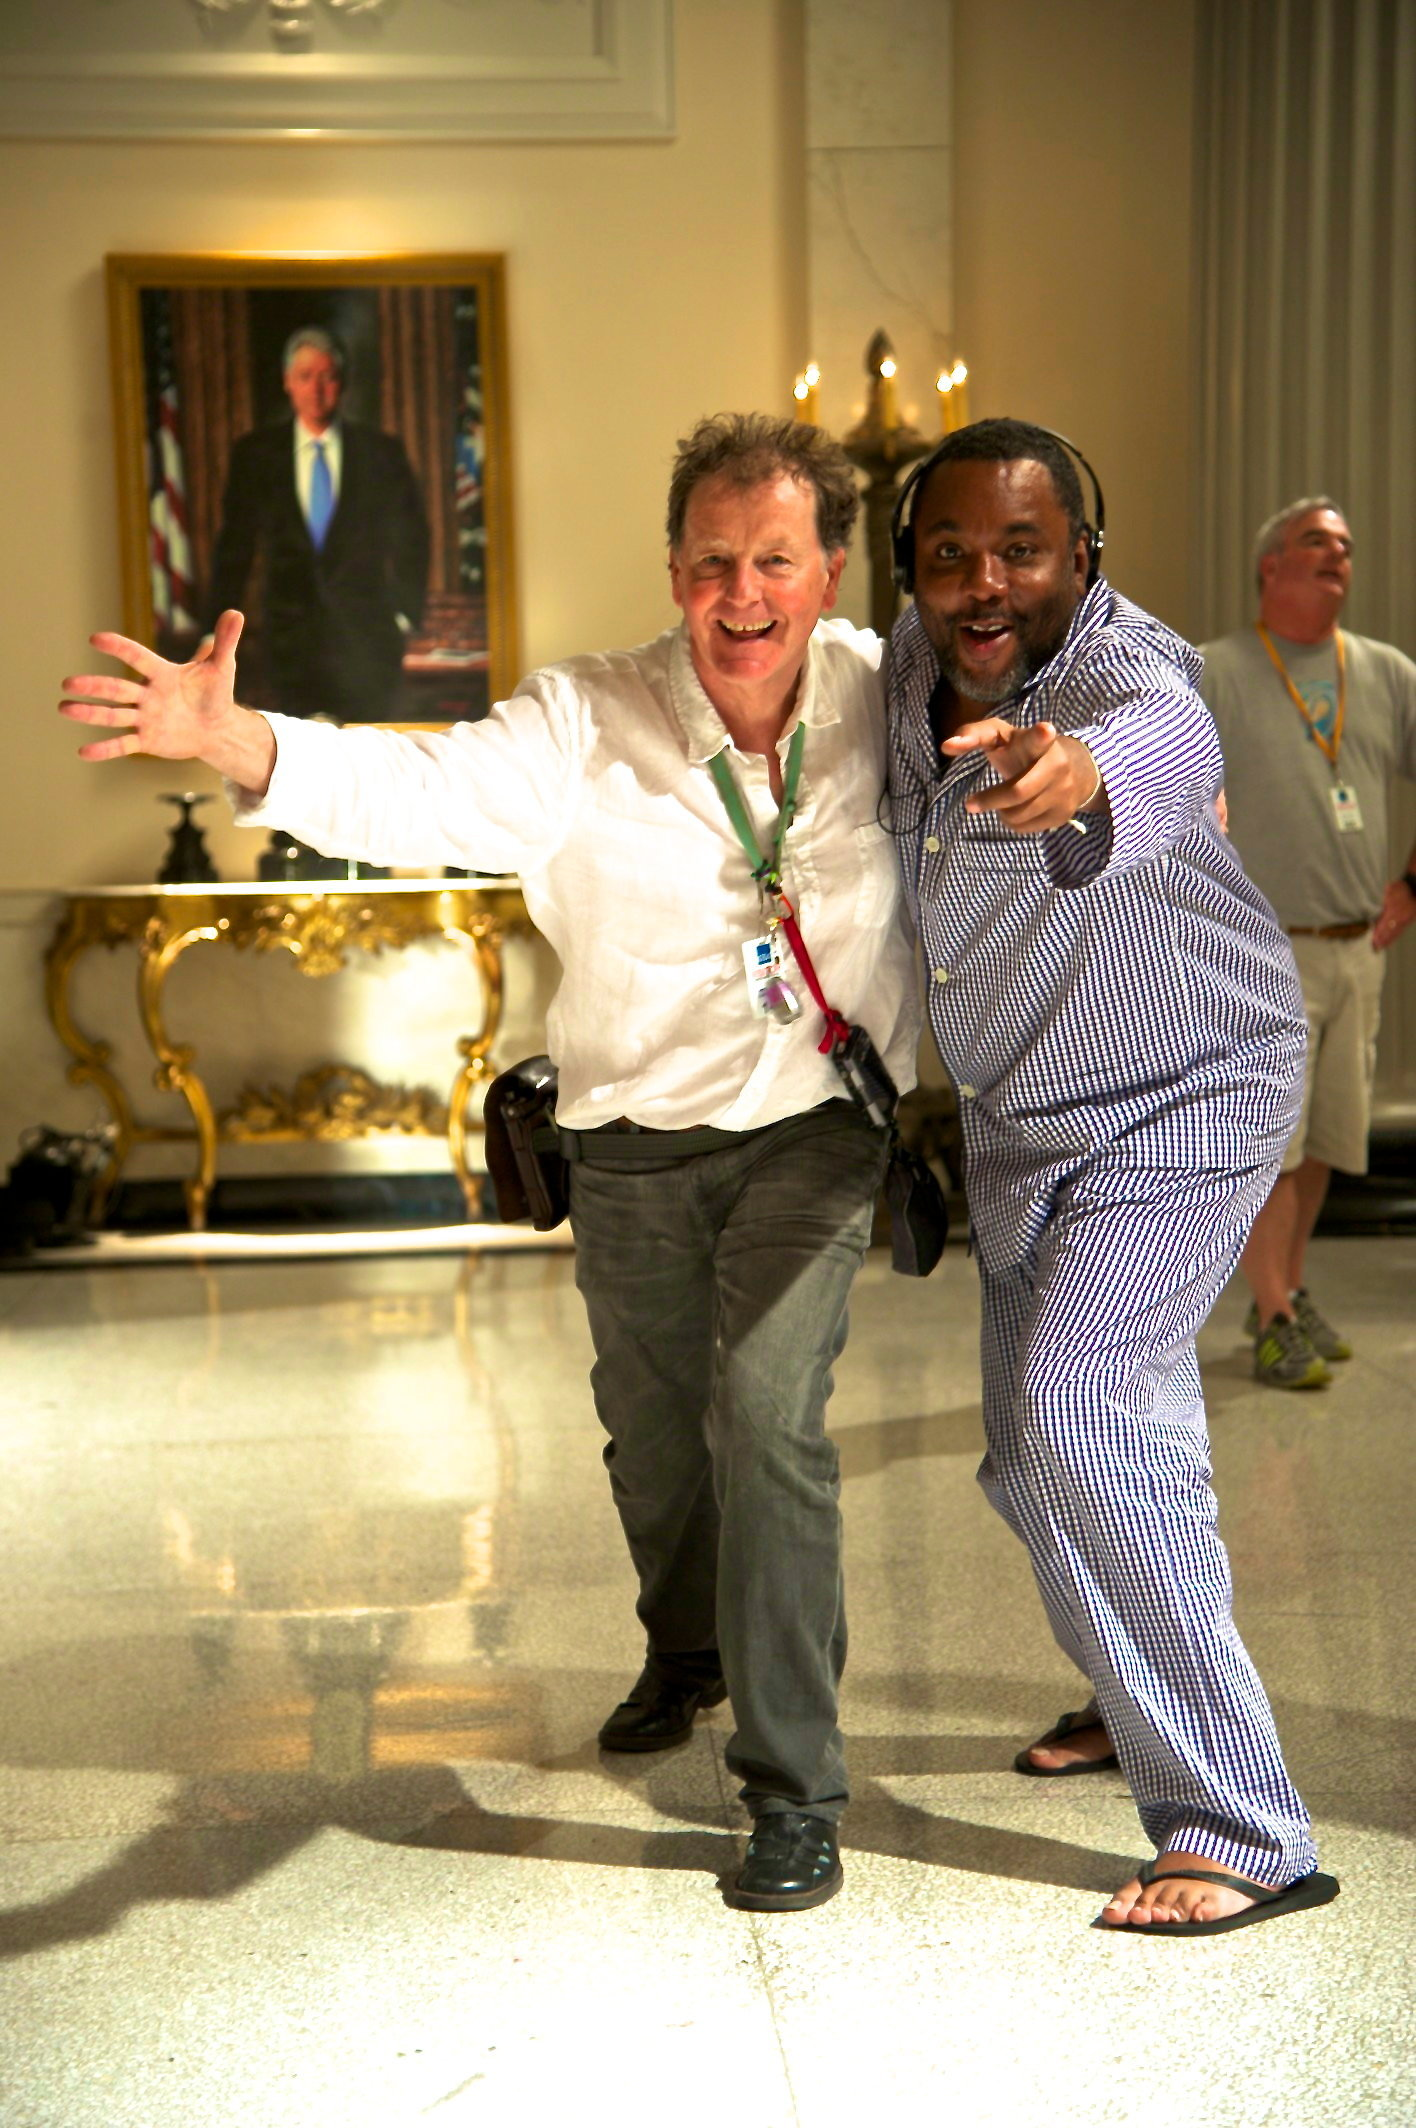 DP Andrew Dunn & Director Lee Daniels - THE BUTLER